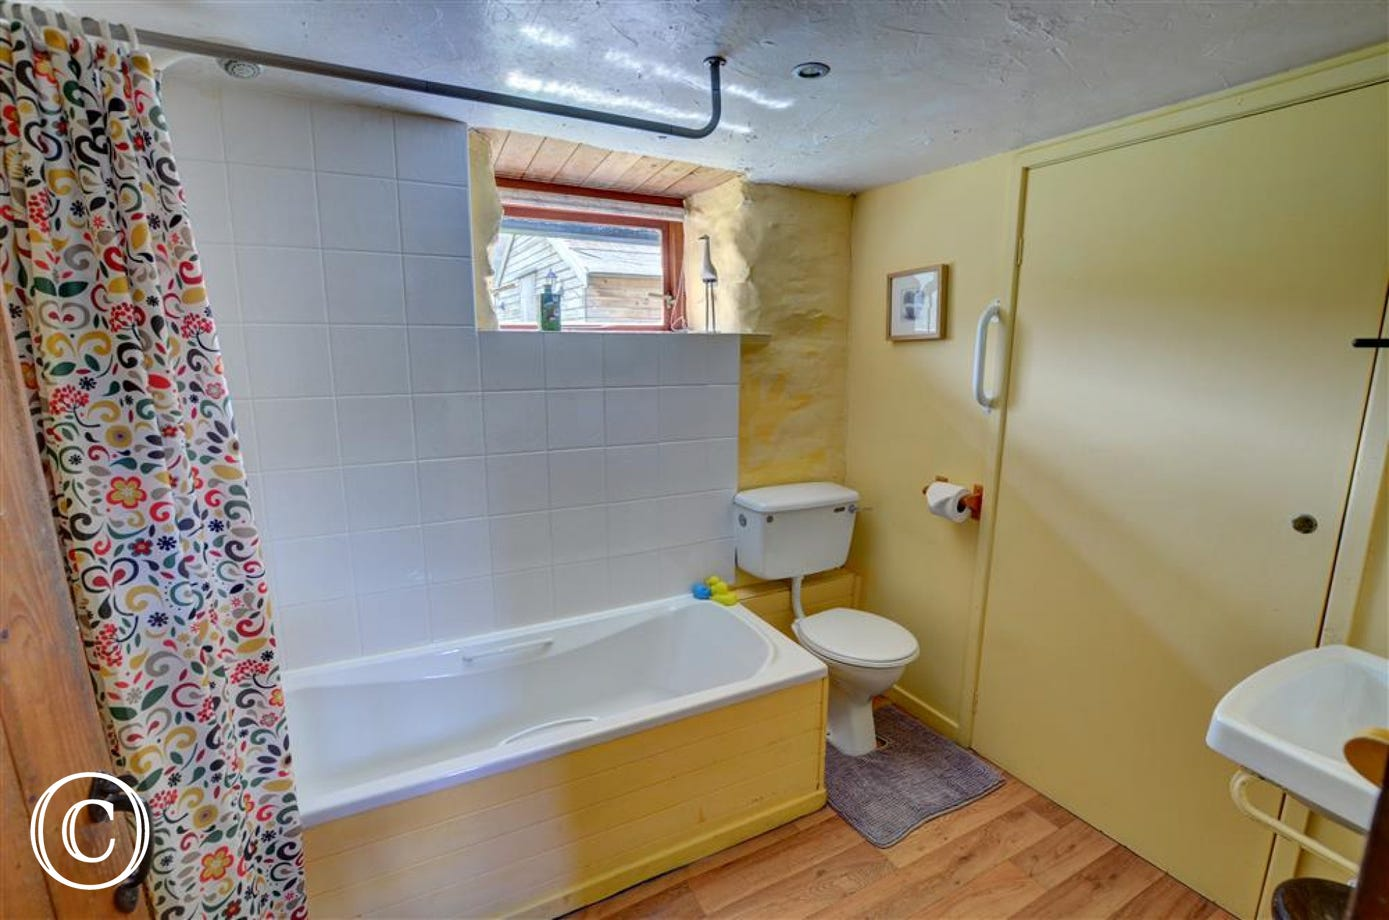 The brightly painted ground floor bathroom has a shower over the bath